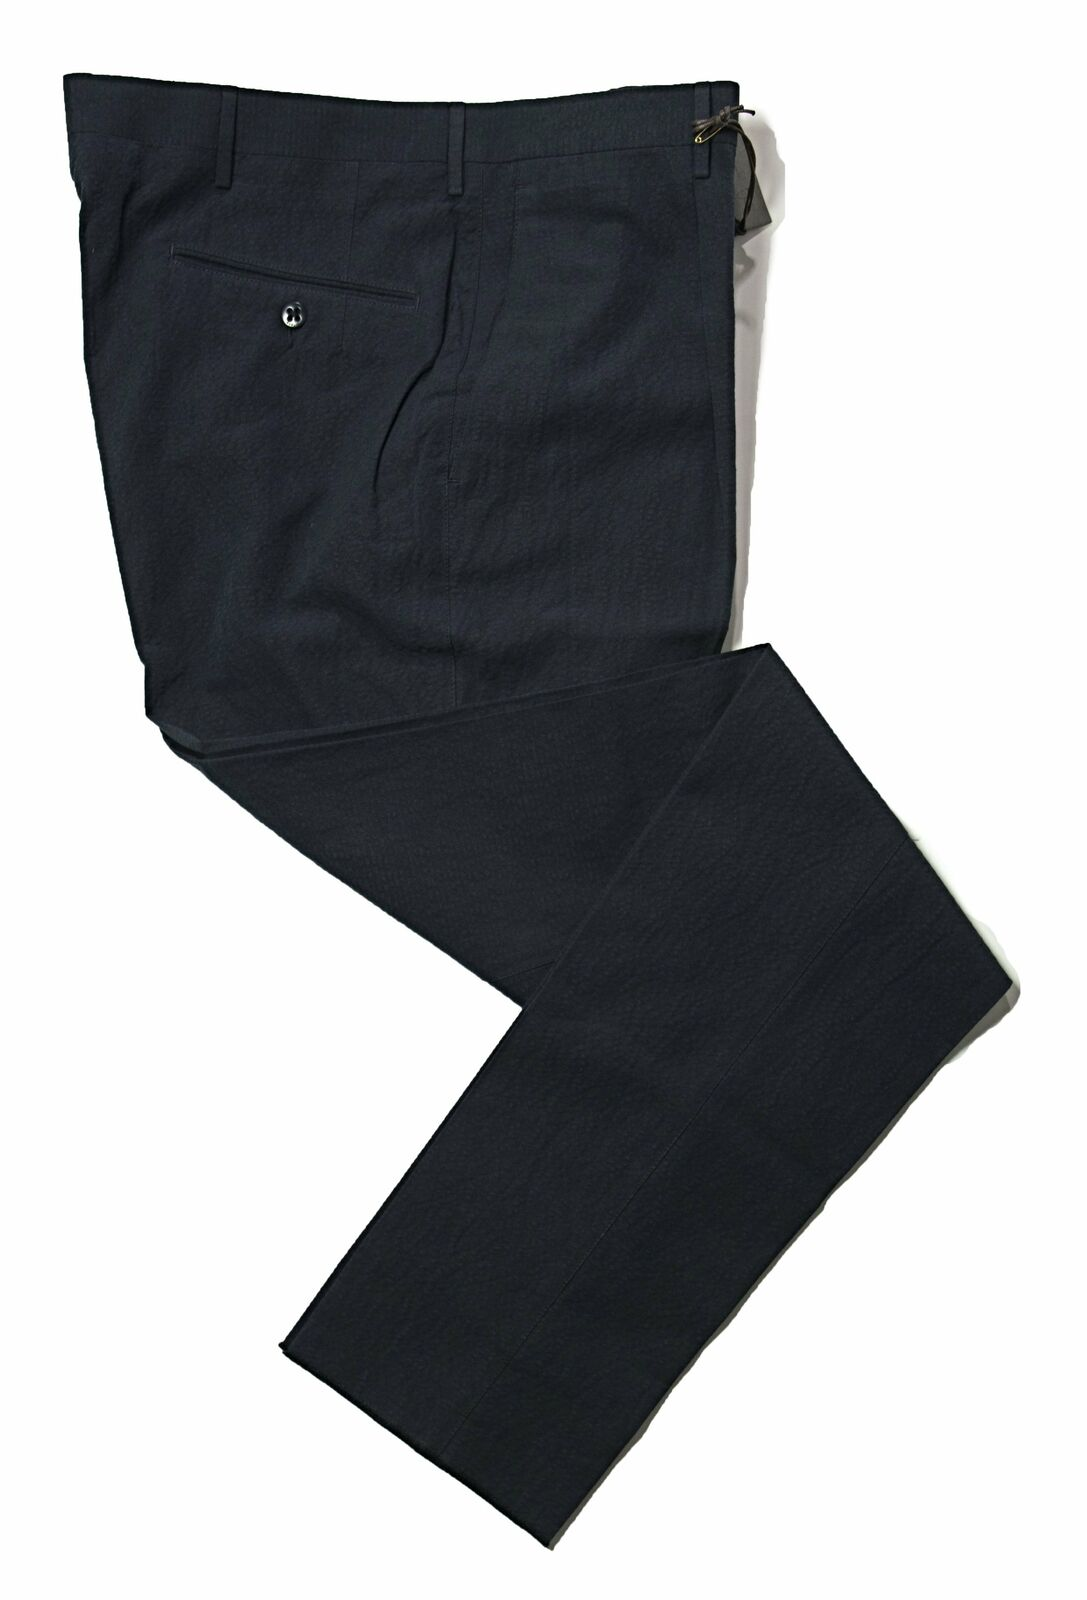 BOGLIOLI Navy bluee Slim-Fit Cotton & Linen Pants  Made in